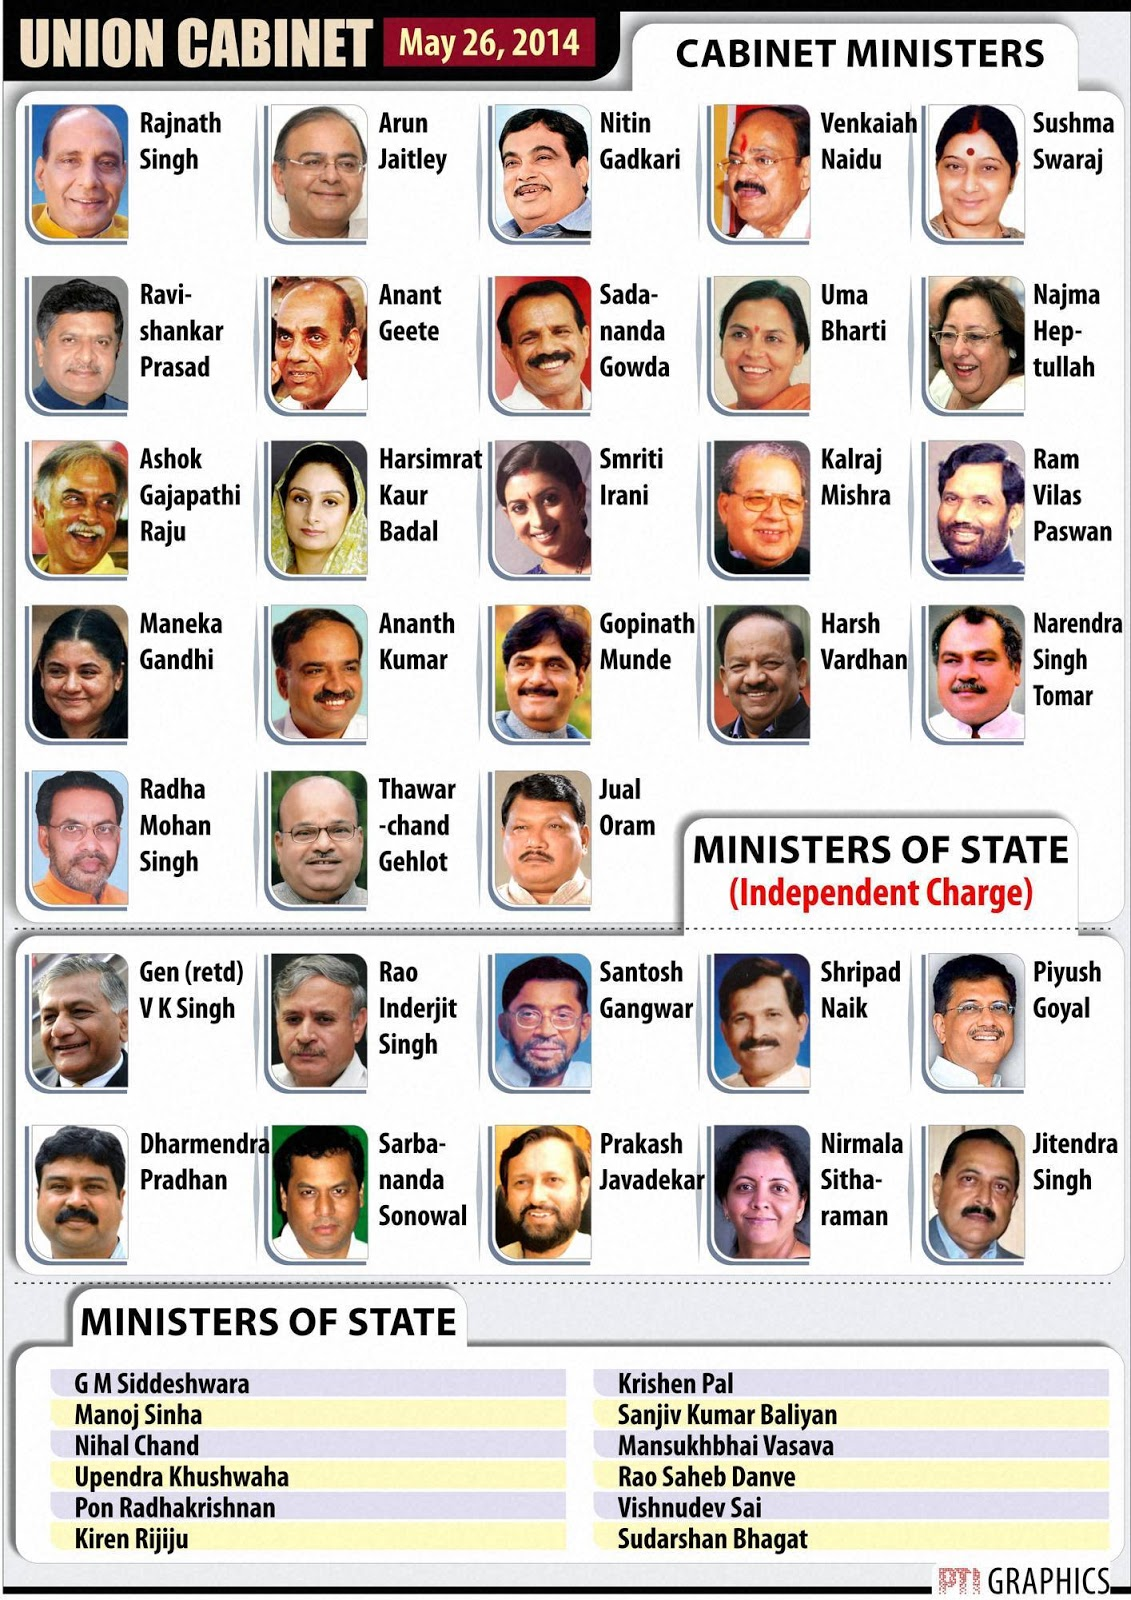 CABINET MINISTERS OF INDIA 2016 ~ General Knowledge Questions and More